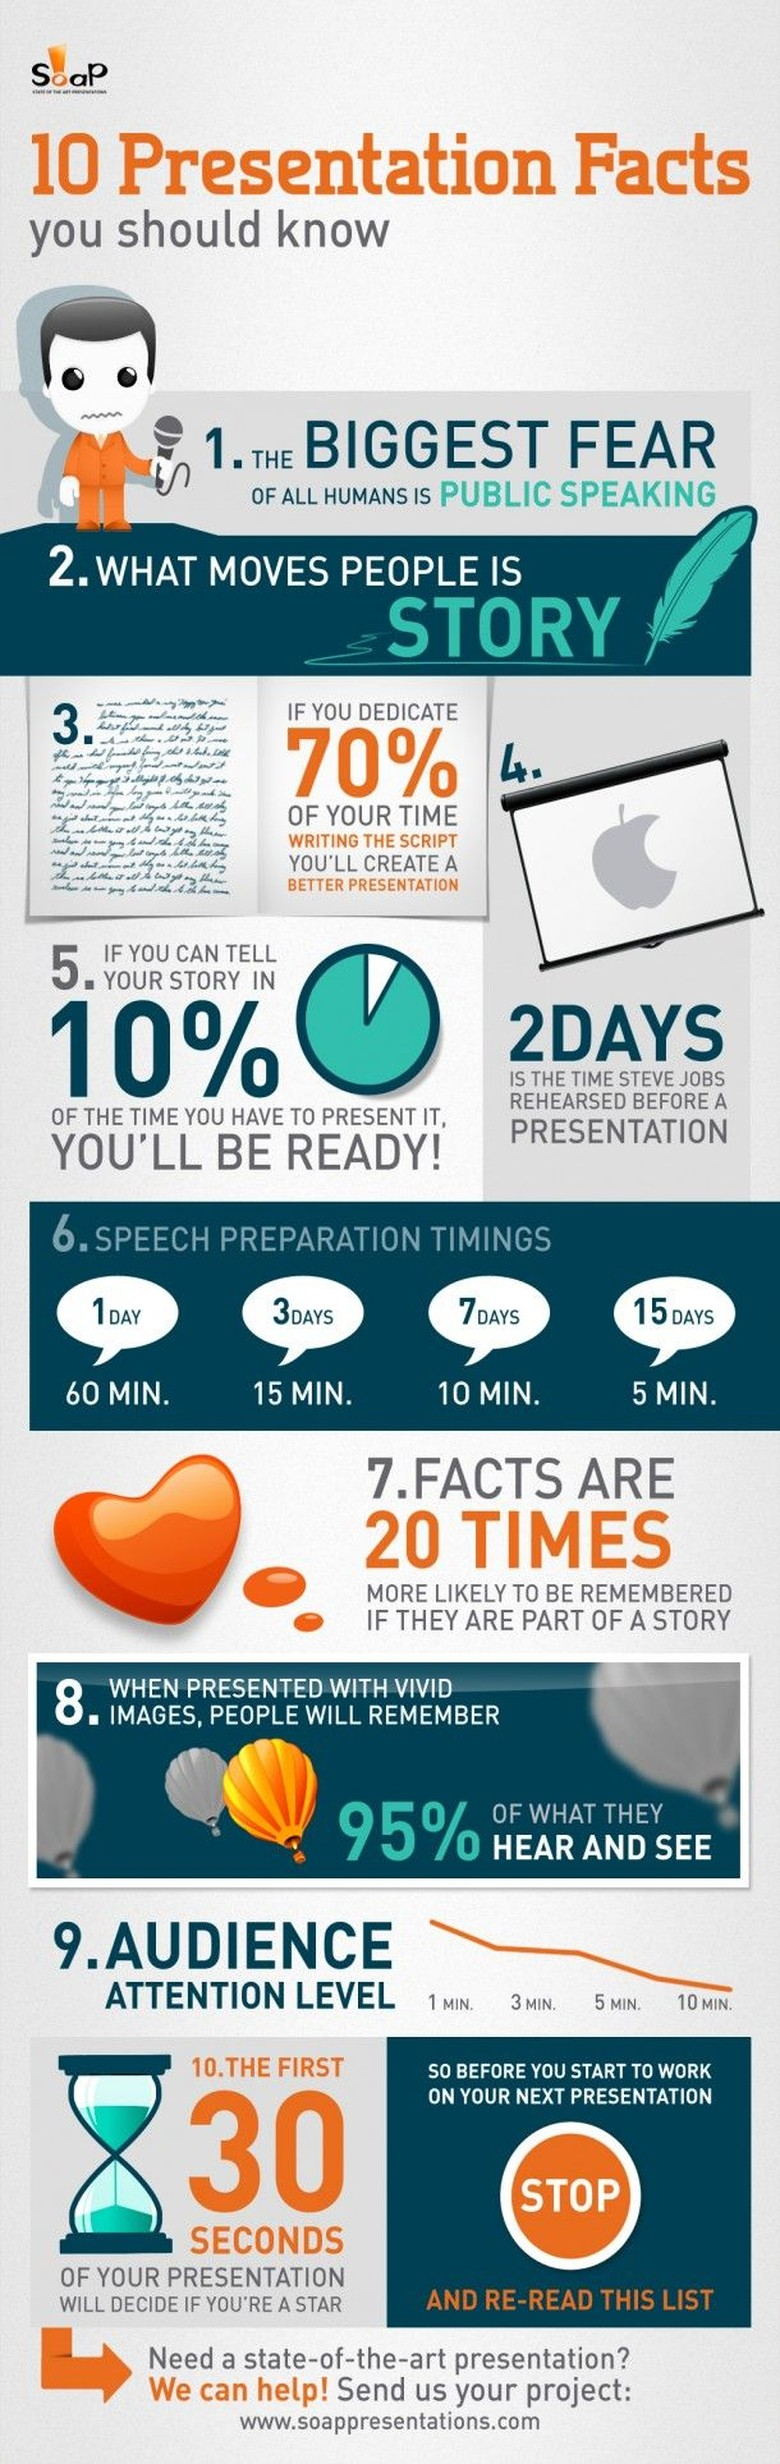 Public Speaking Infographic | The Muse